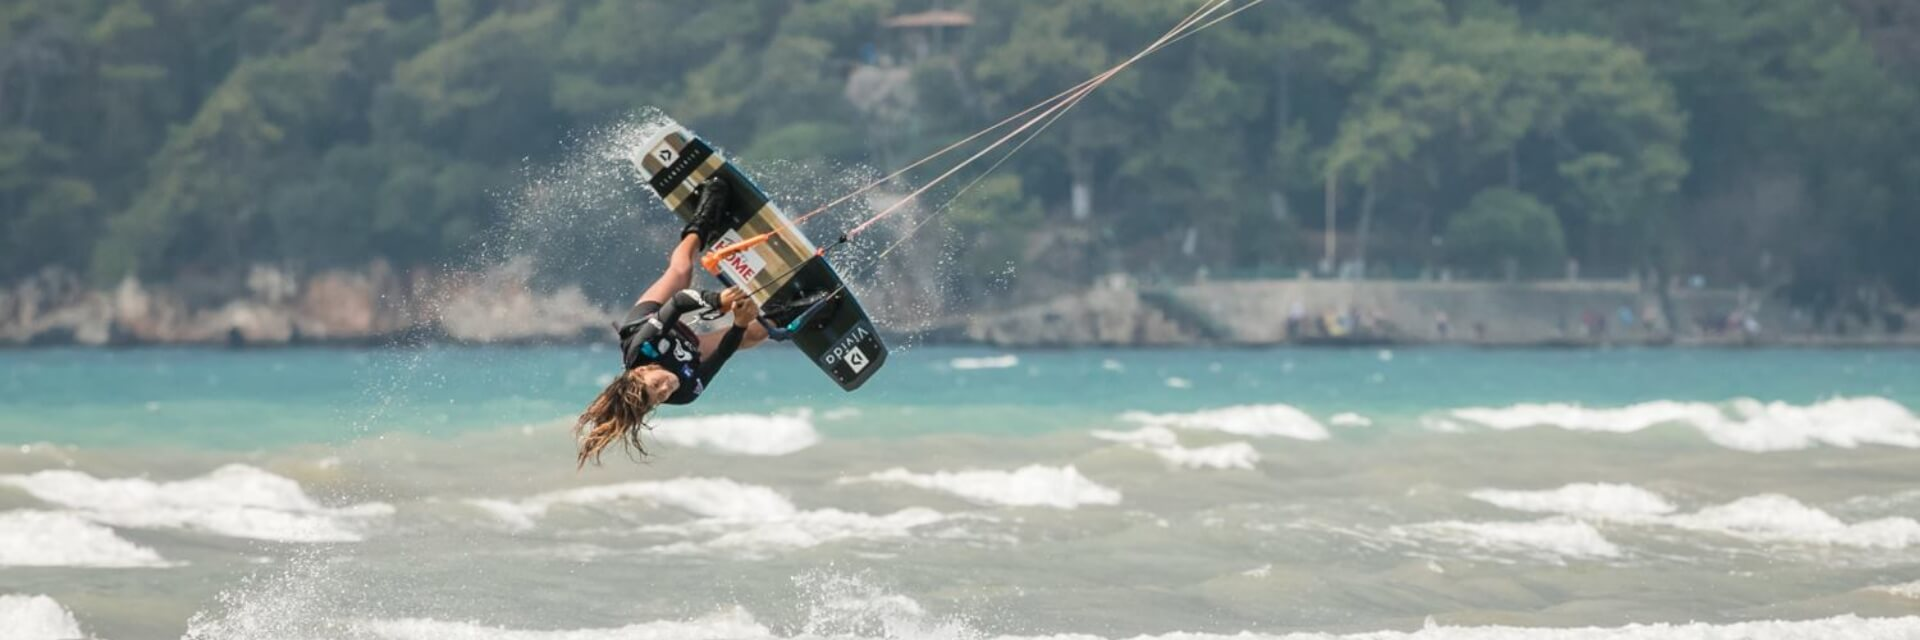 Duotone_Kiteboarding_Team_Mikaili_Sol_Team_Series2019